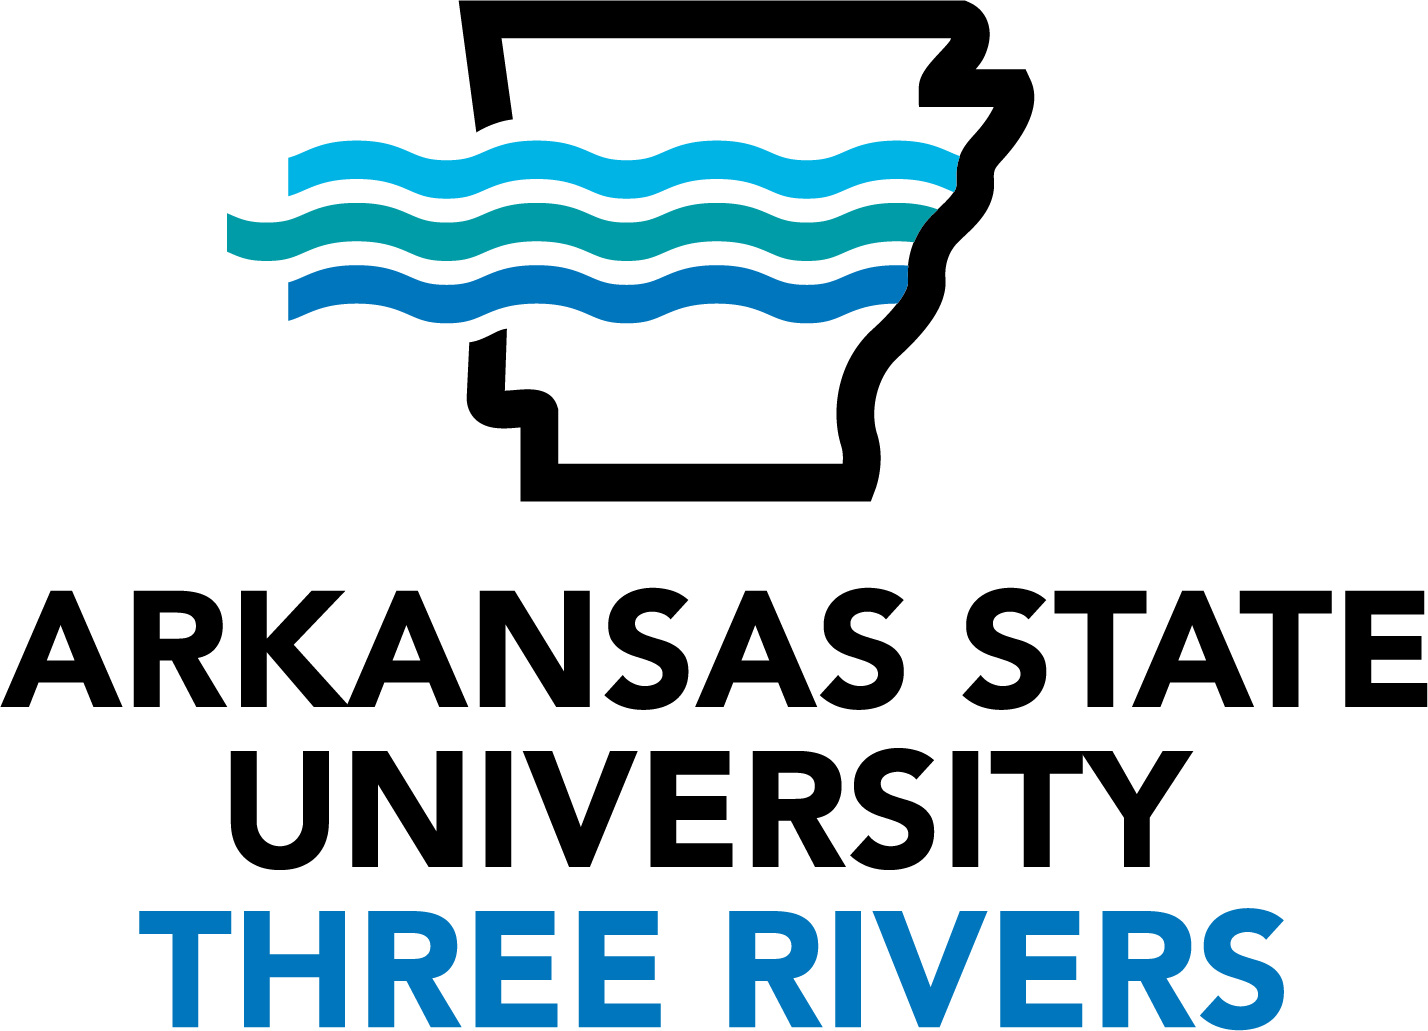 ASU THREE RIVERS FULL STACKED LOGO COLOR